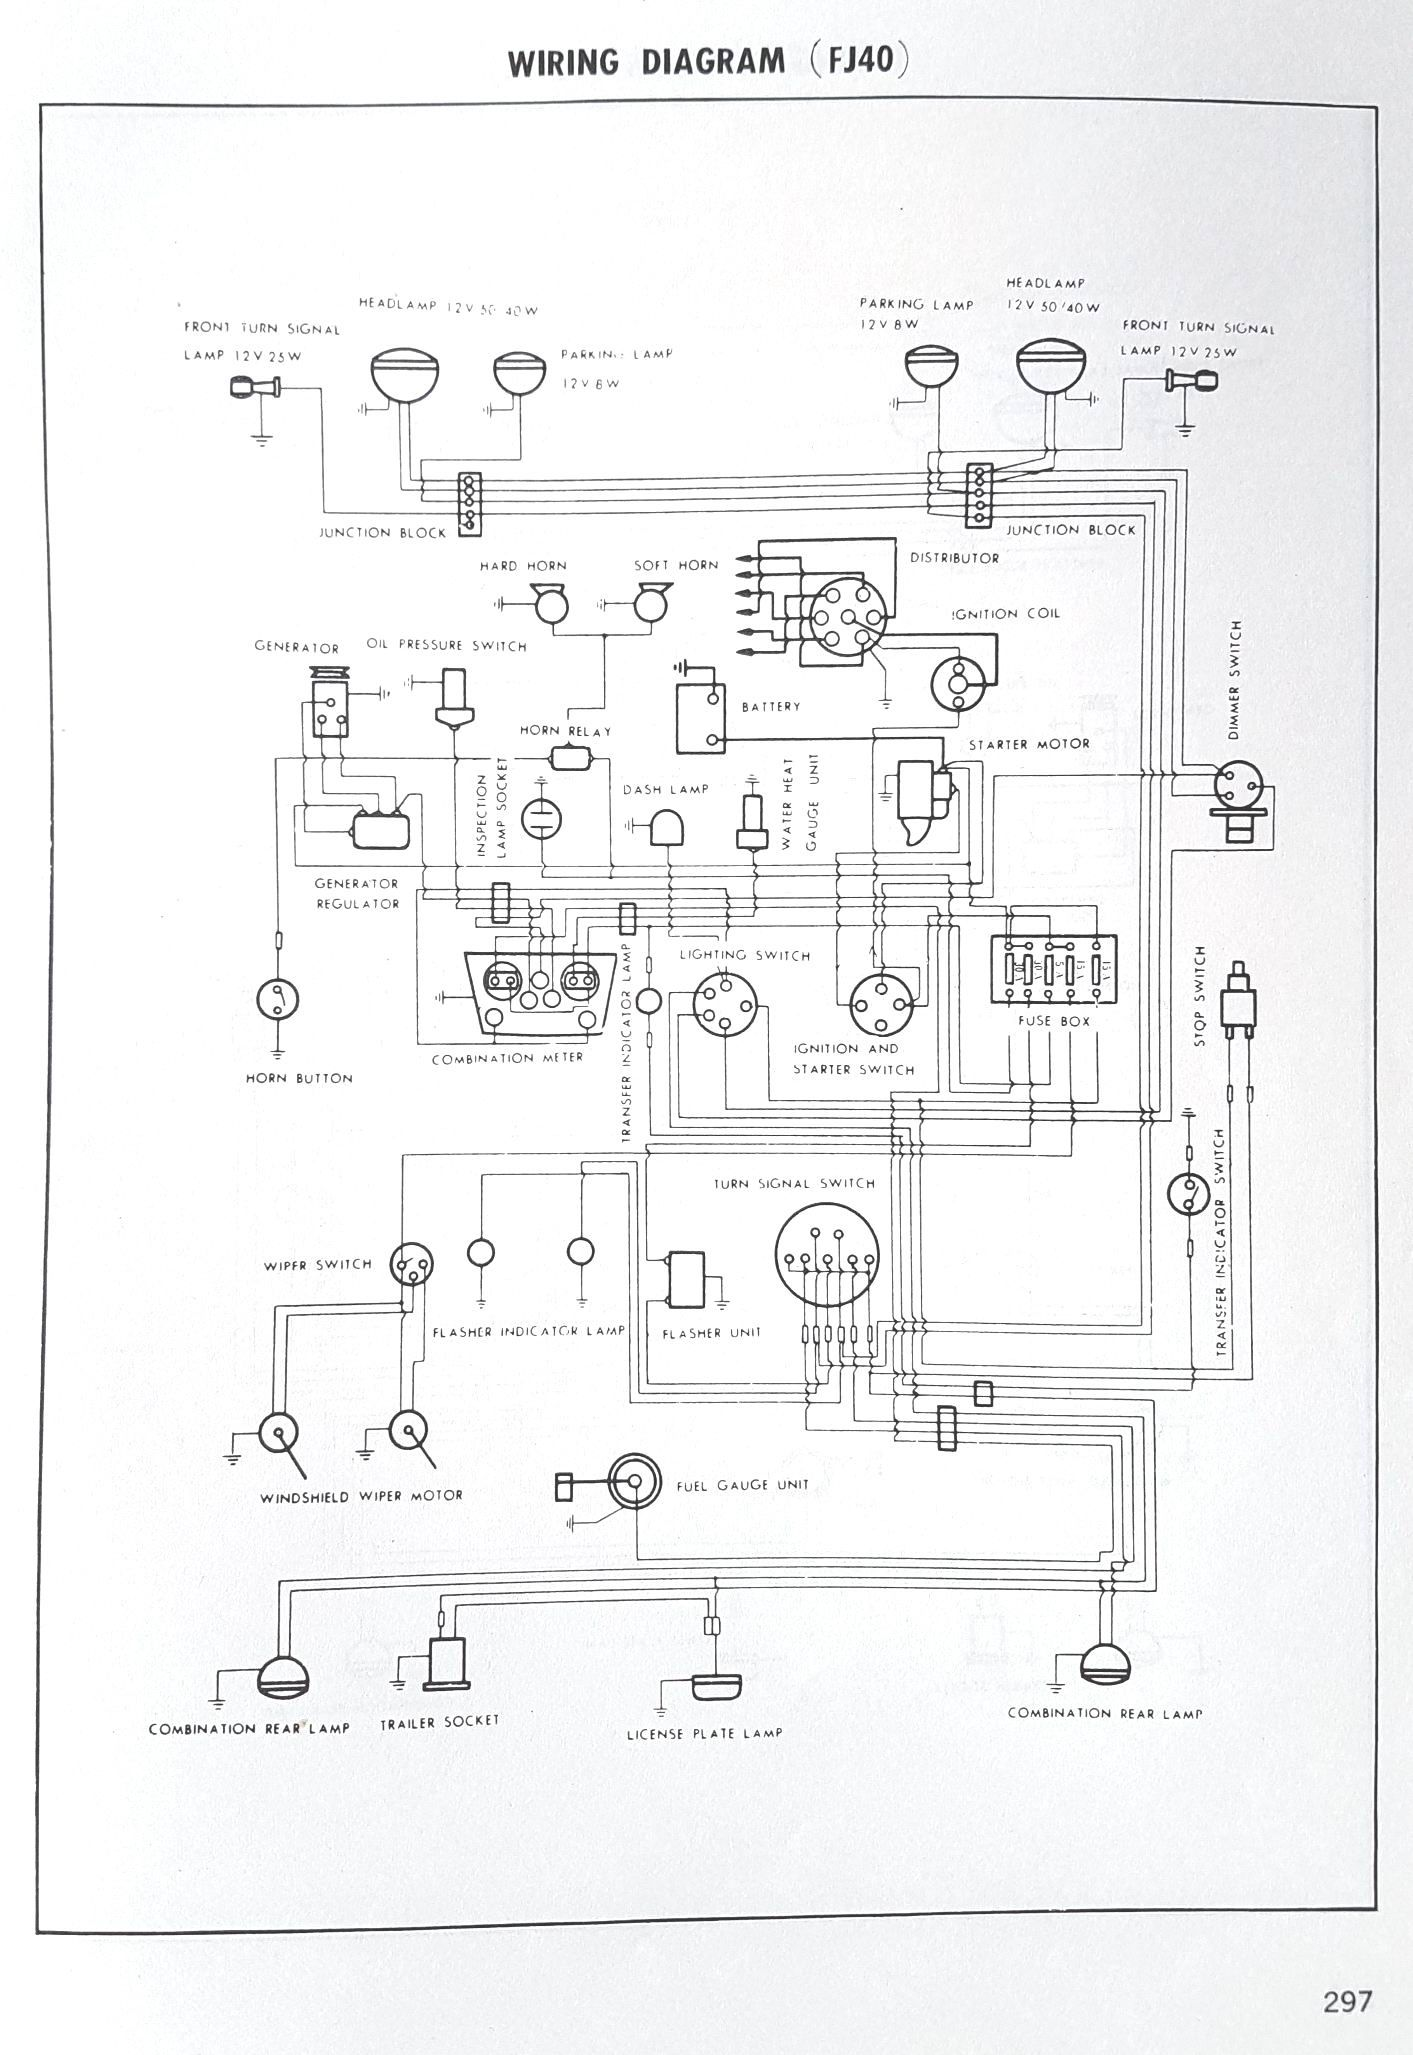 toyota landcruiser service manual wiring diagram fj40 fj 40 rh pinterest co uk